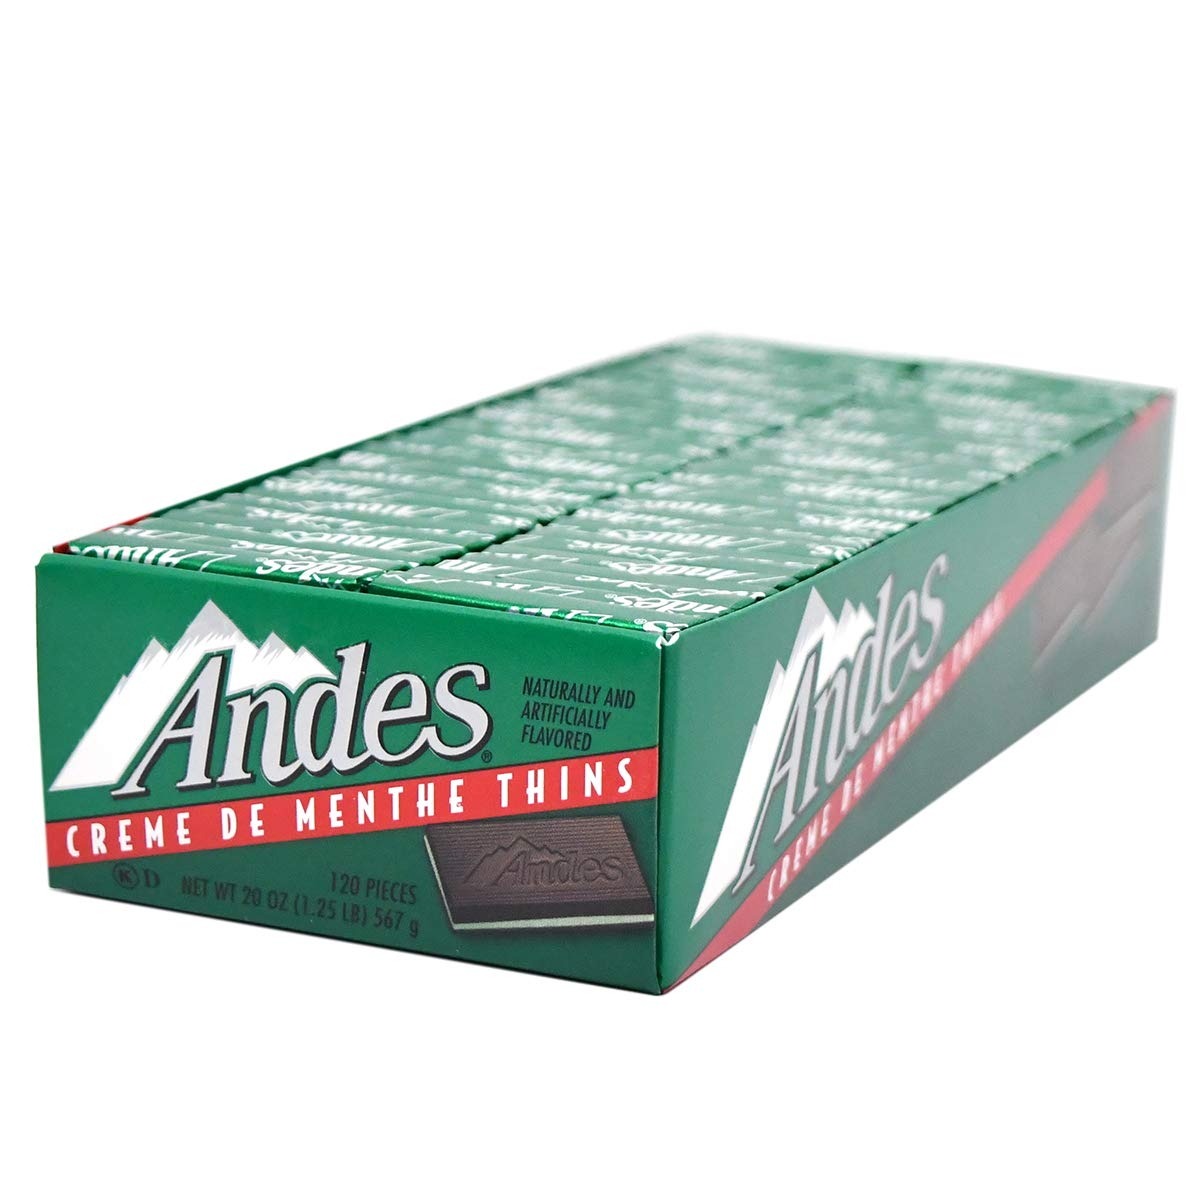 Andes Creme De Menthe Thin Mints, 120-Count Thins by Andes (Image #1)